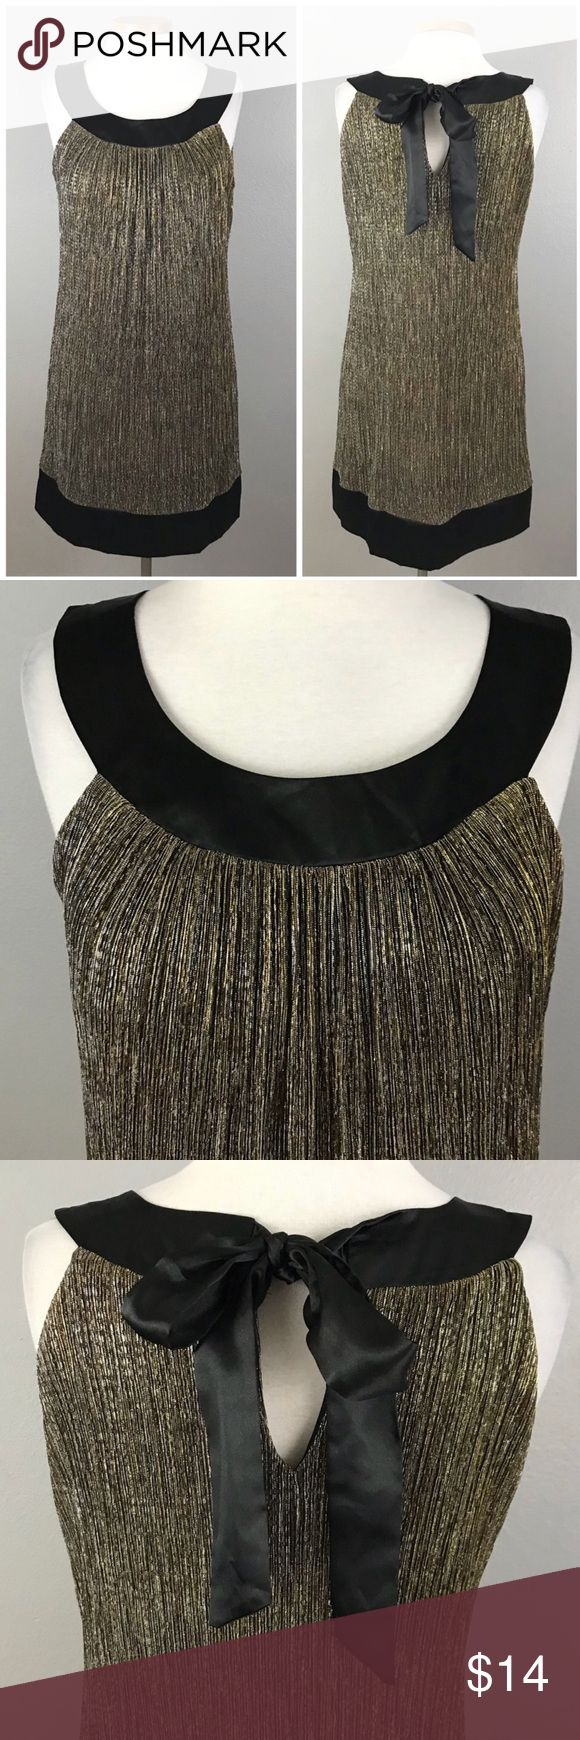 """Enfocus Micro Pleated Gold Silver Party Dress Enfocus Micro Pleated Gold Silver Party Dress. Size 12. Dress has stretch and is lined. Thank you for looking at my listing. Please feel free to comment with any questions (no trades/modeling).  •Bust: 42"""" •Length: 36"""" •Condition:  VGUC, no flaws.   25% off all Bundles or 3+ items! Reasonable offers welcome.   BIN: JC En Focus Studio Dresses Mini"""